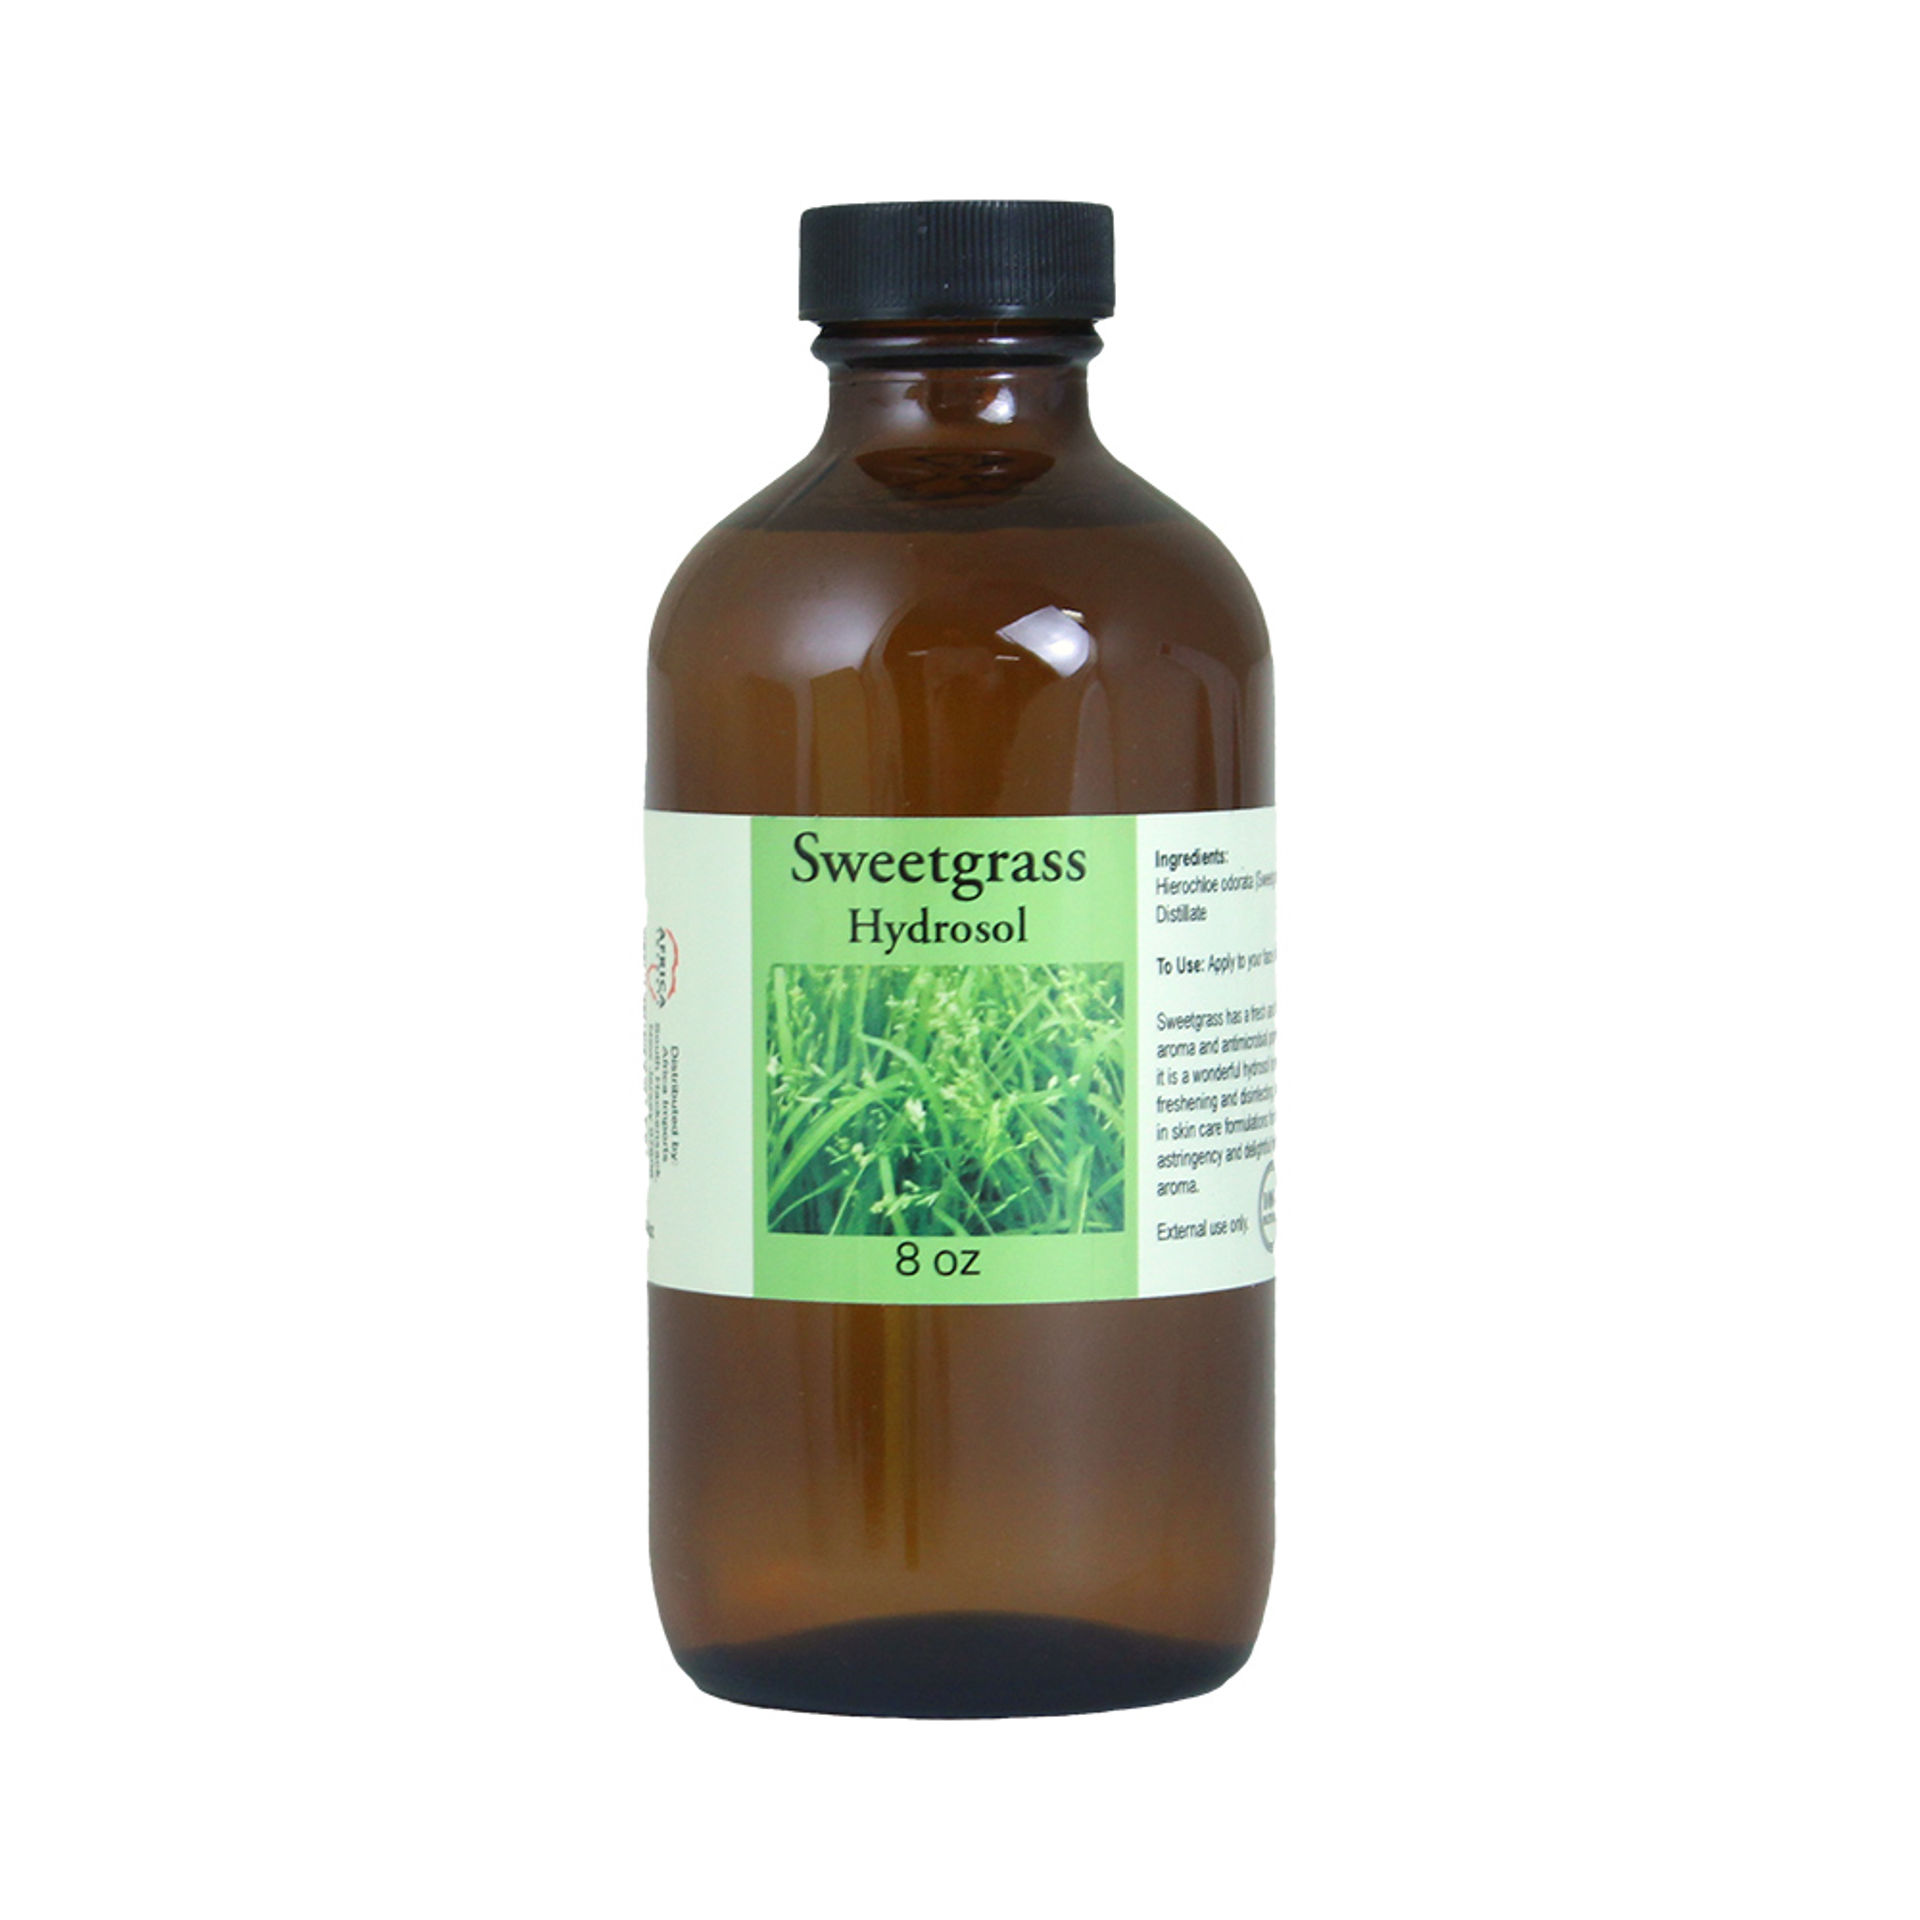 Picture of Sweetgrass Hydrosol - 8 oz.